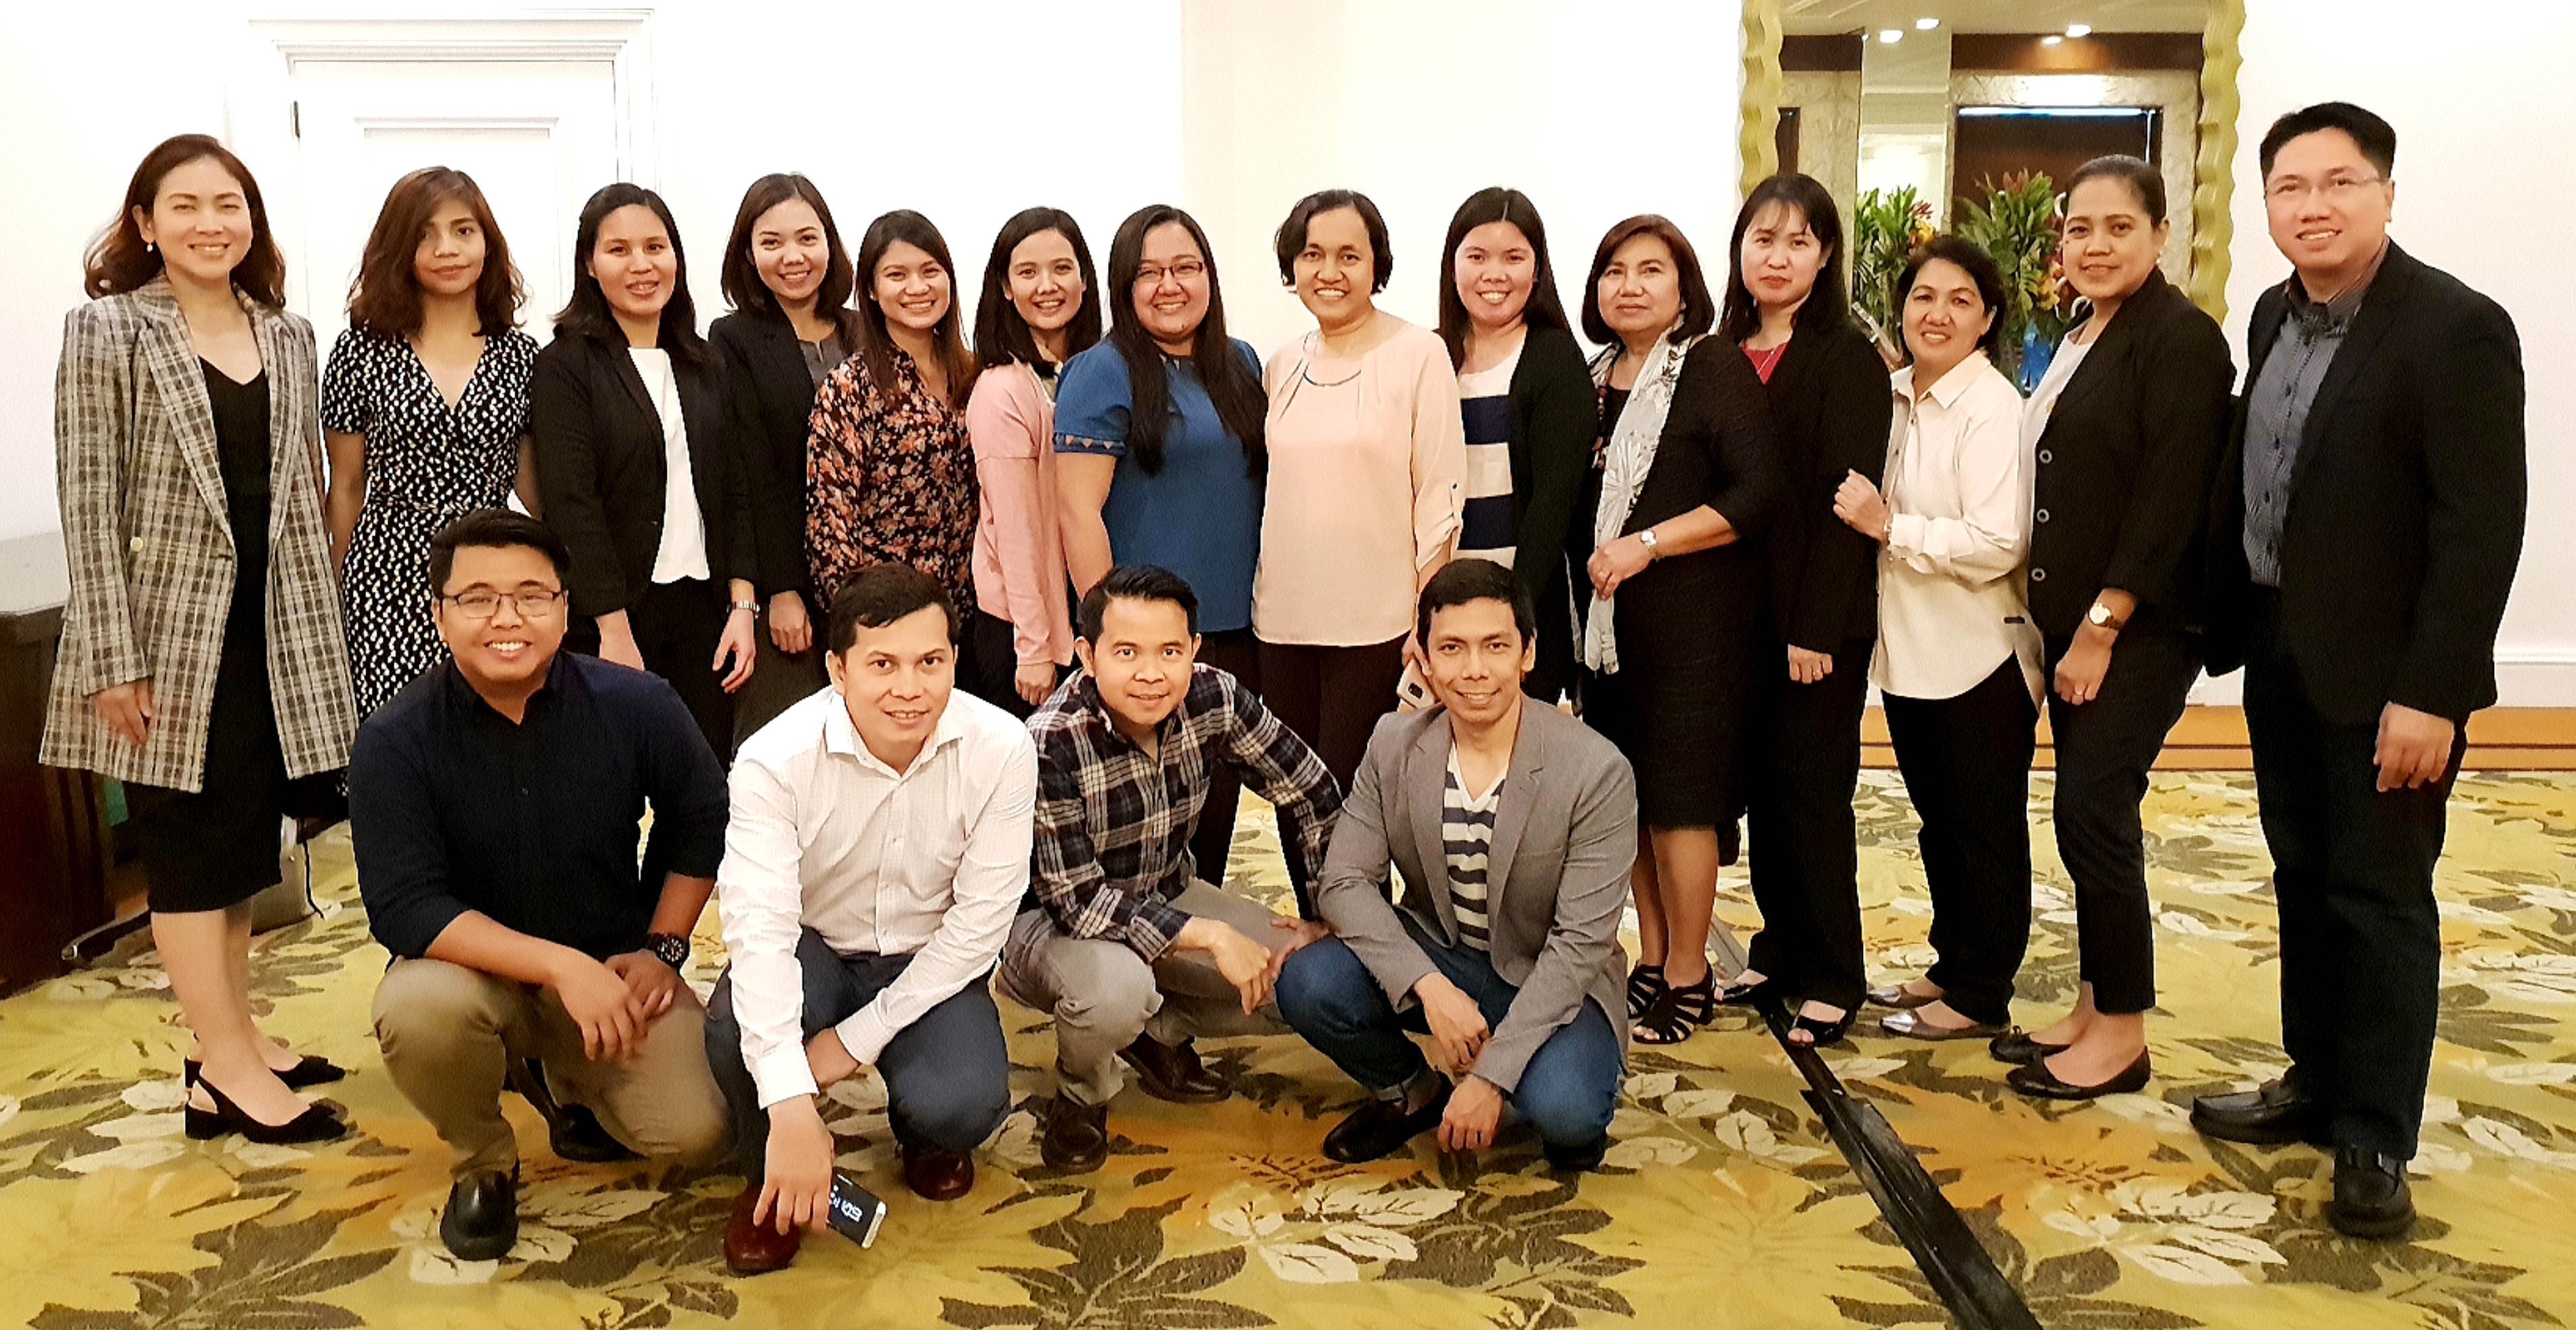 Comptrollers' Circle officers and members gather at Edsa Shangri-La Hotel for one of the biggest events for Filipino accountants